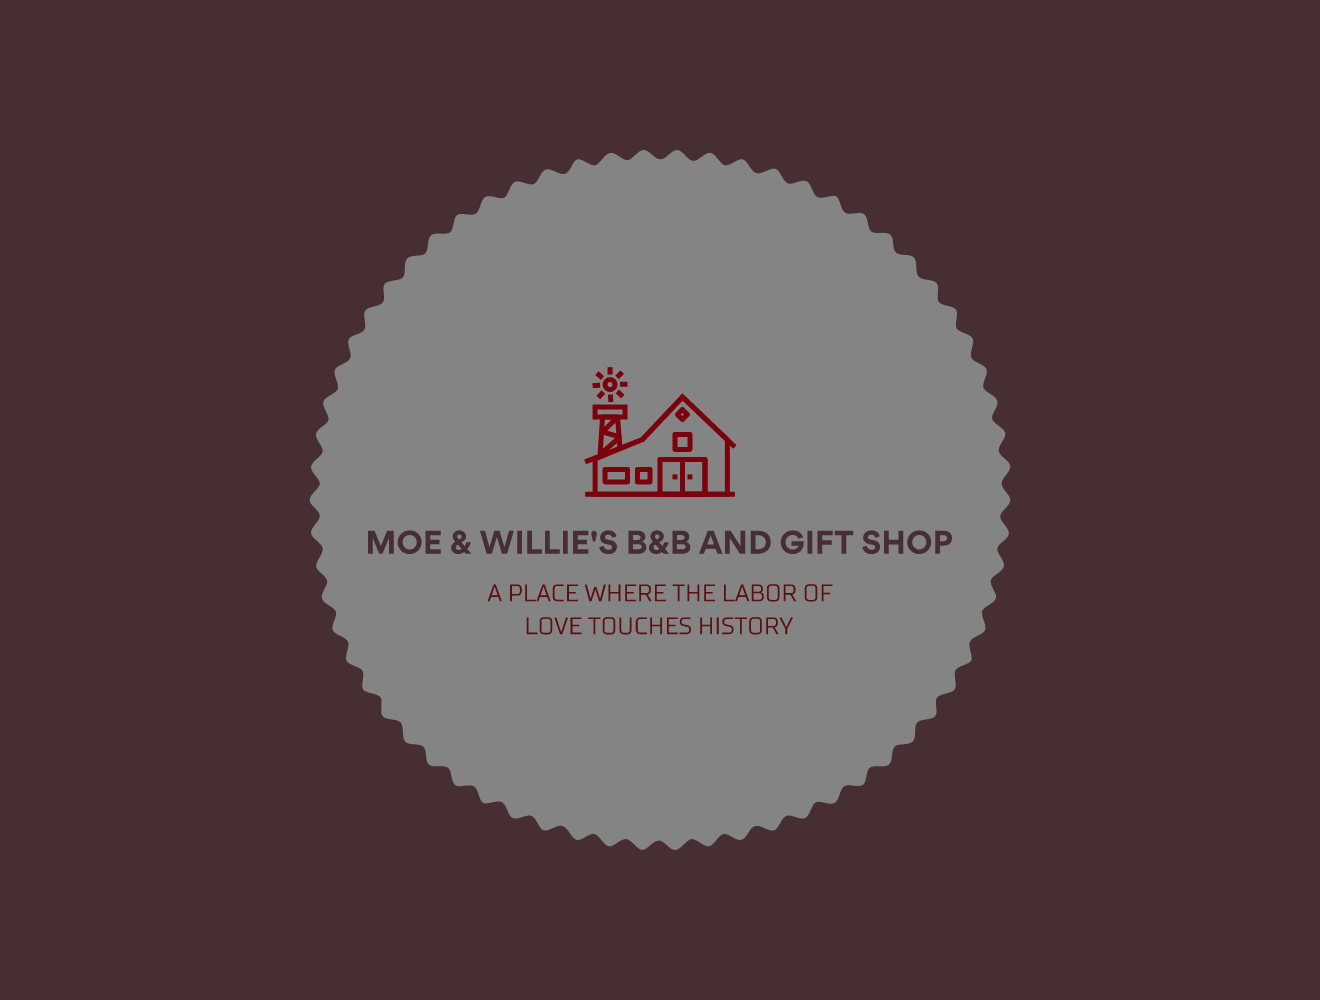 Moe & Willie's B&B and Gift Shop